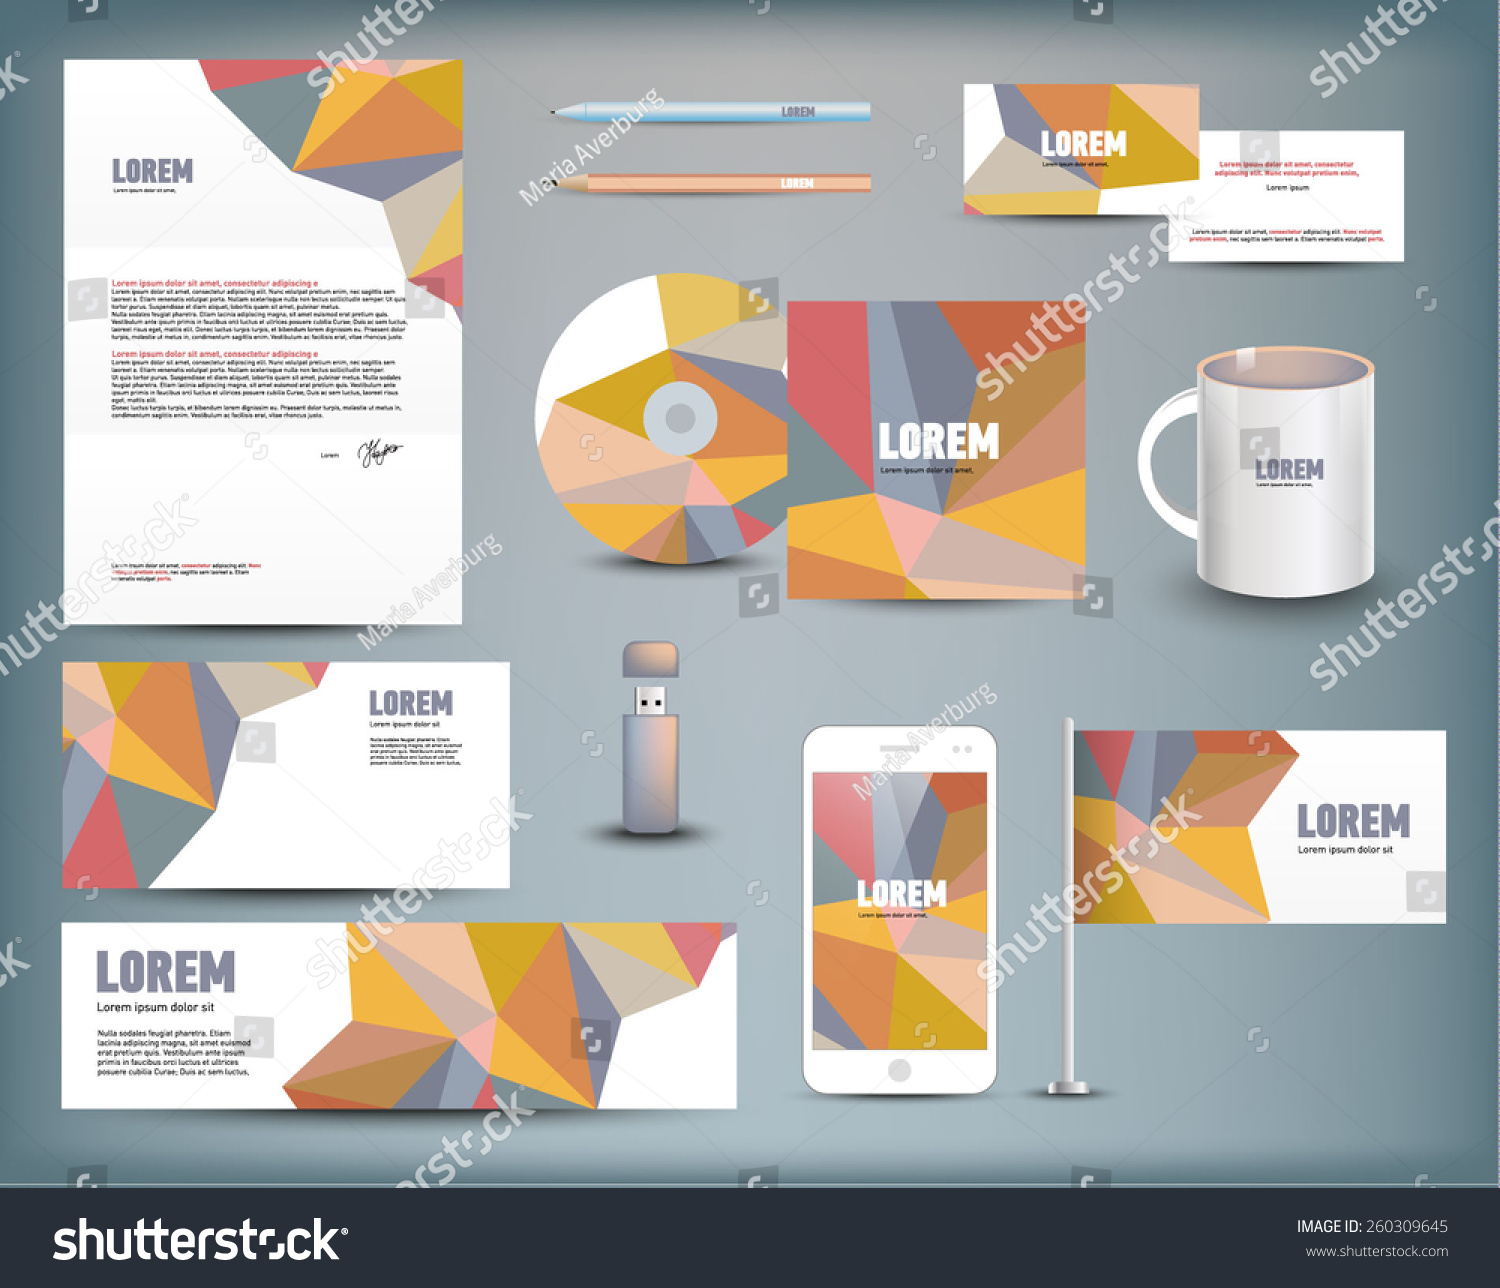 Corporate identity templates blank business cards stock vector corporate identity templates blank business cards stock vector 260309645 shutterstock reheart Gallery